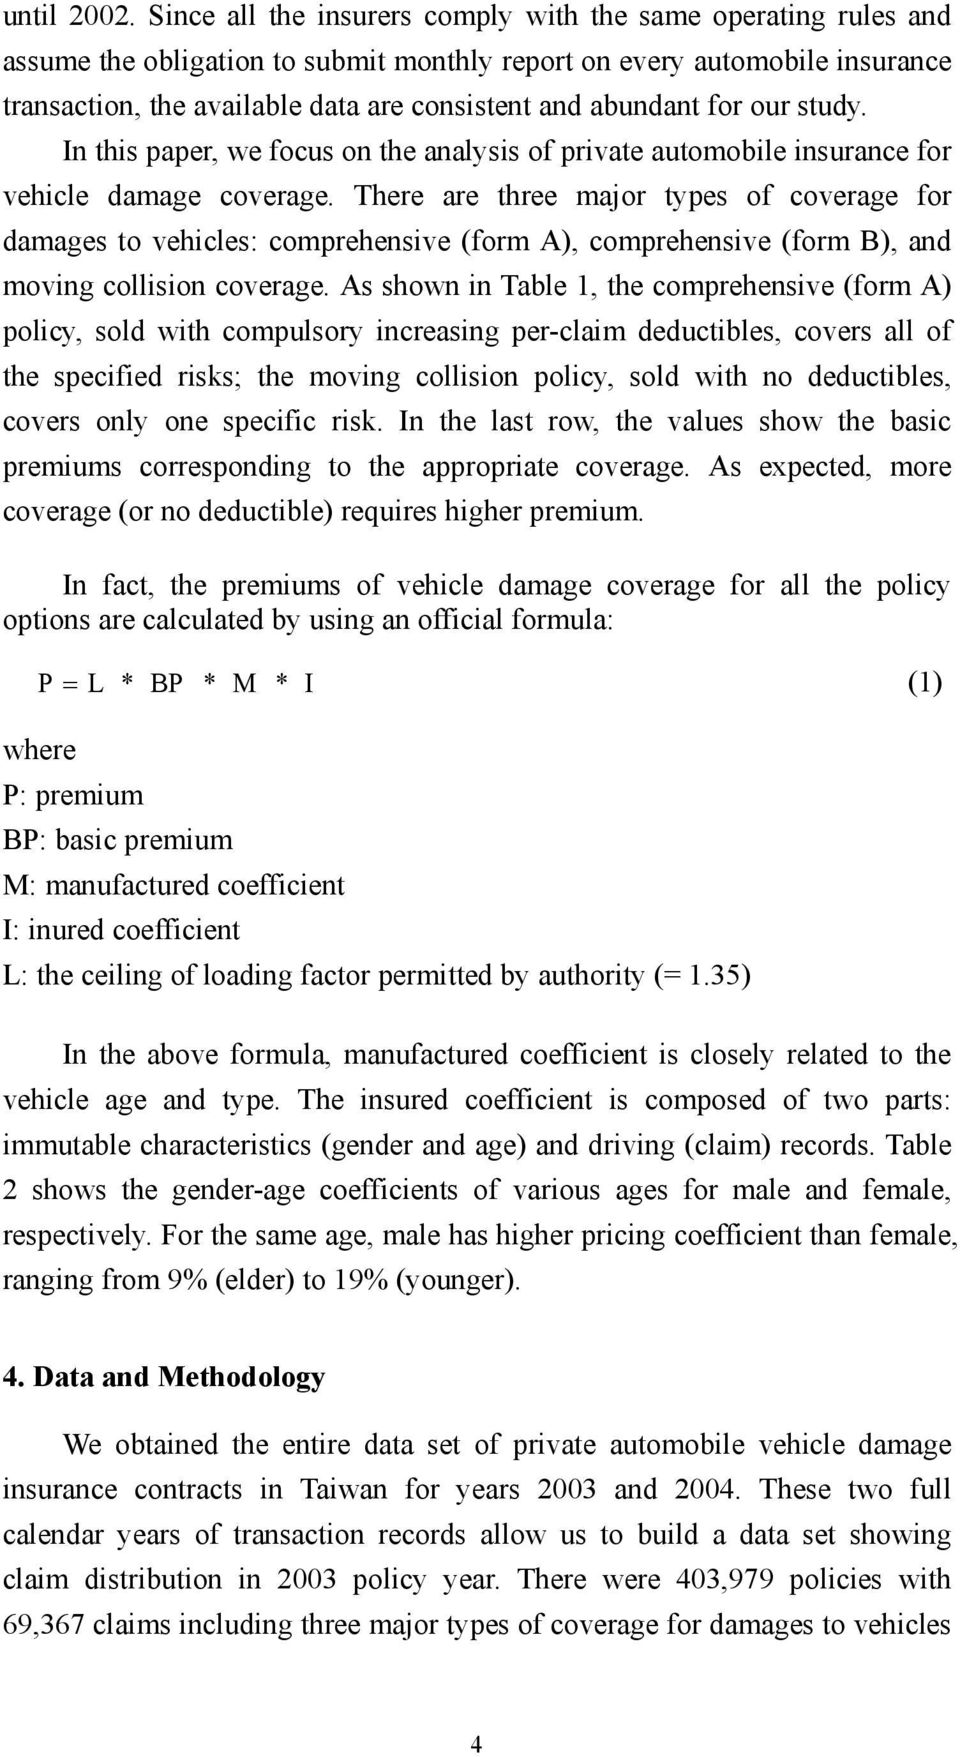 abundant for our study. In this paper, we focus on the analysis of private automobile insurance for vehicle damage coverage.